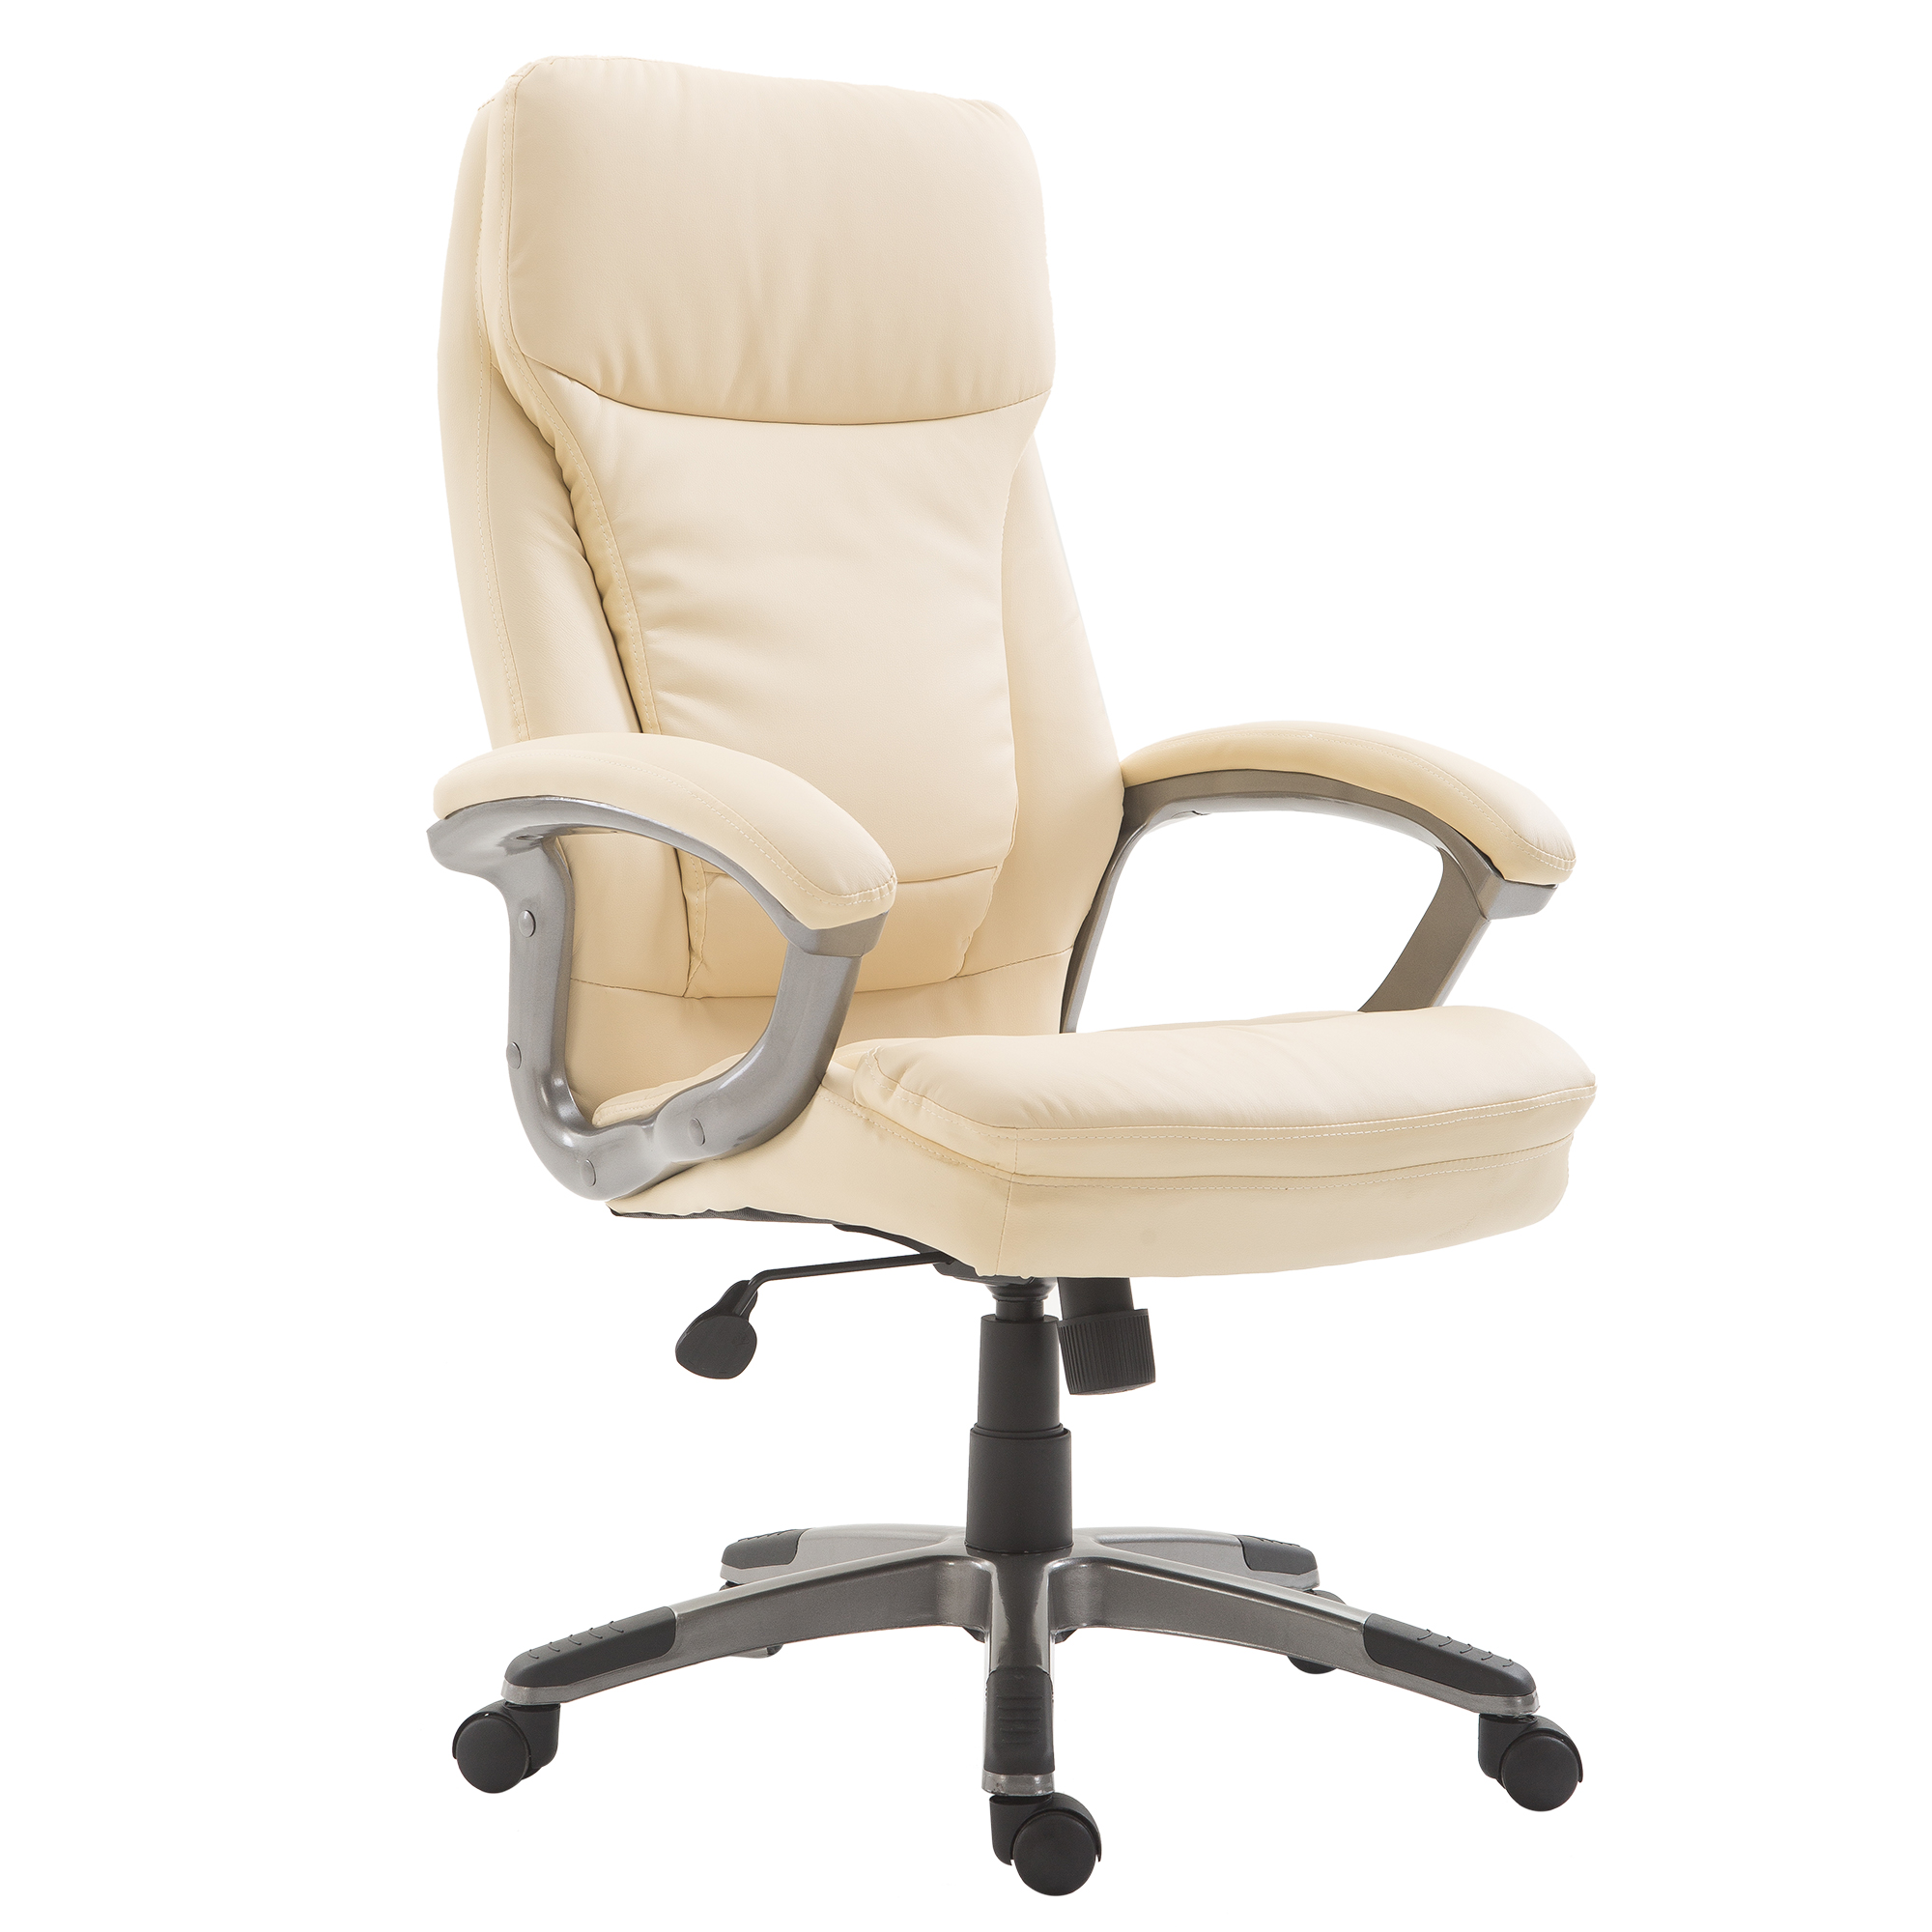 Image of CAD $179.99 HOMCOM High Back Executive Office Chair Thick Padding Cream / Big & Tall Ergonomic Computer Recliner Seat Adjustable Tilt PU Leather Home Furniture Canada 95509802538